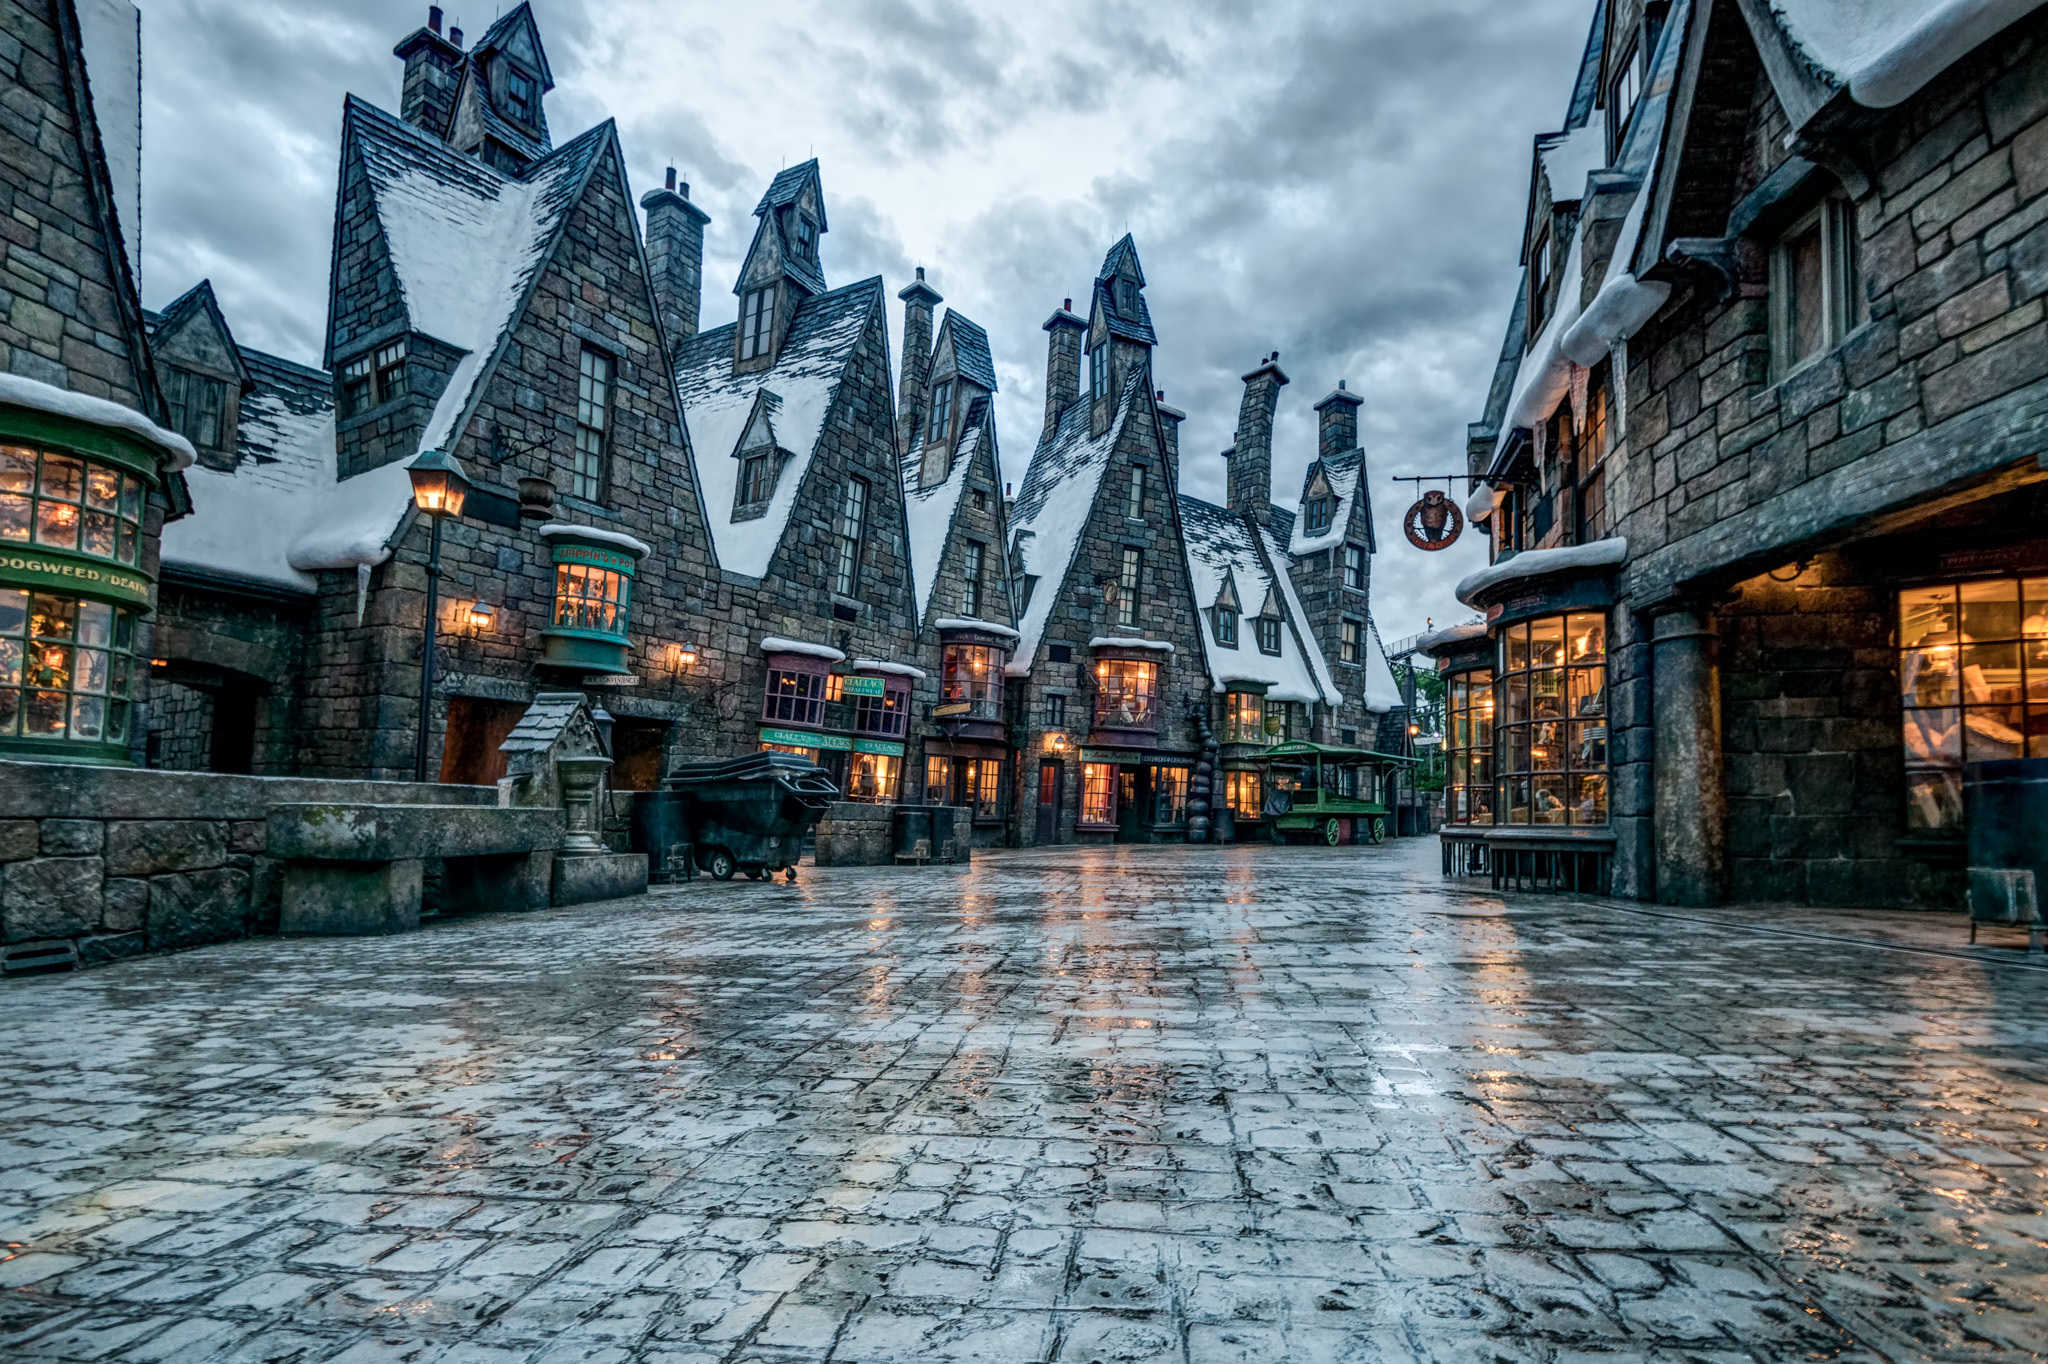 9 remarkable photos of the Wizarding World after hours